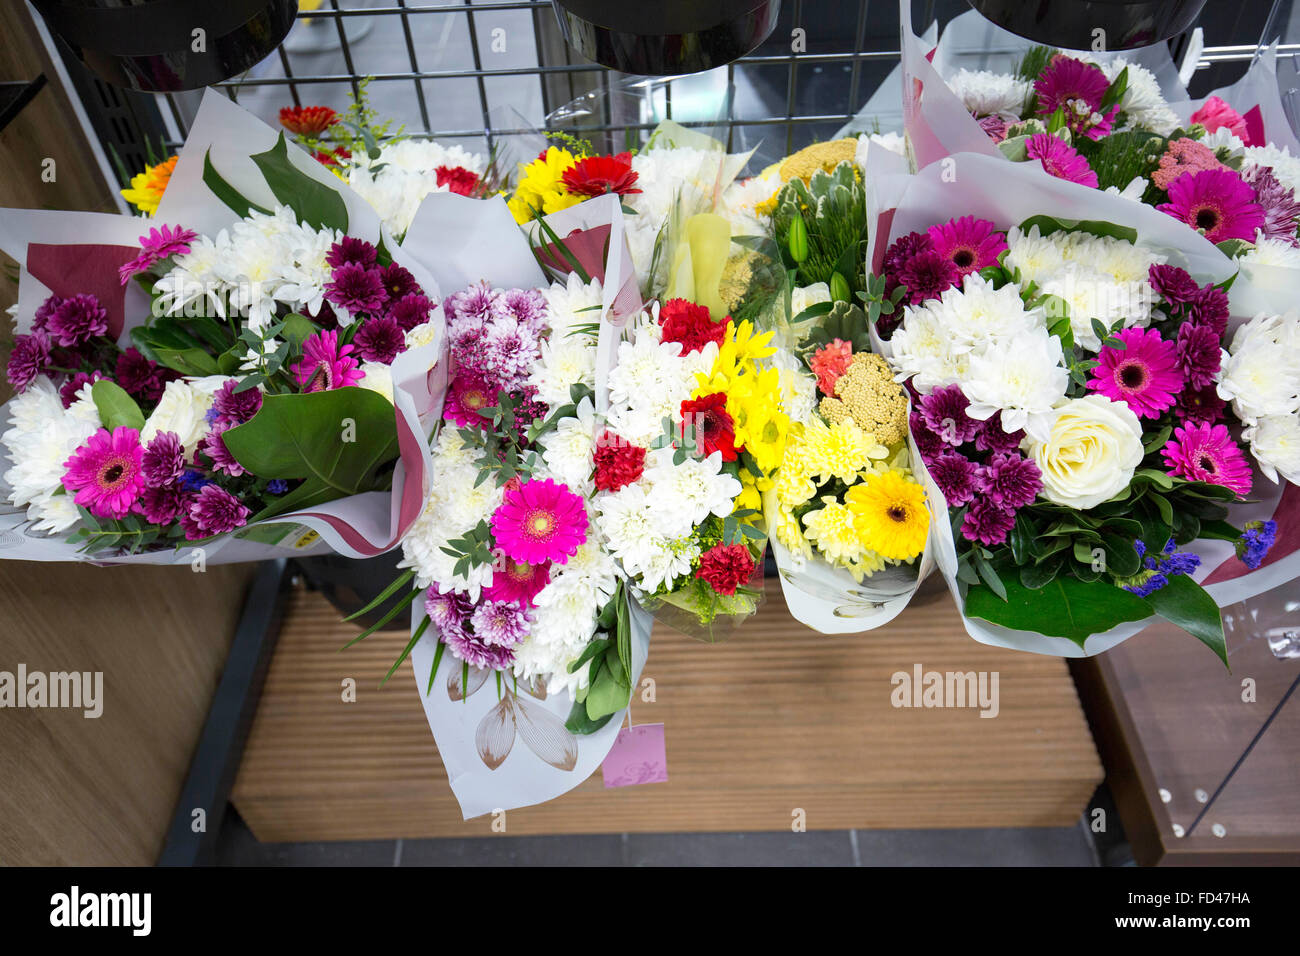 Cheap Flowers Stock Photos Cheap Flowers Stock Images Alamy